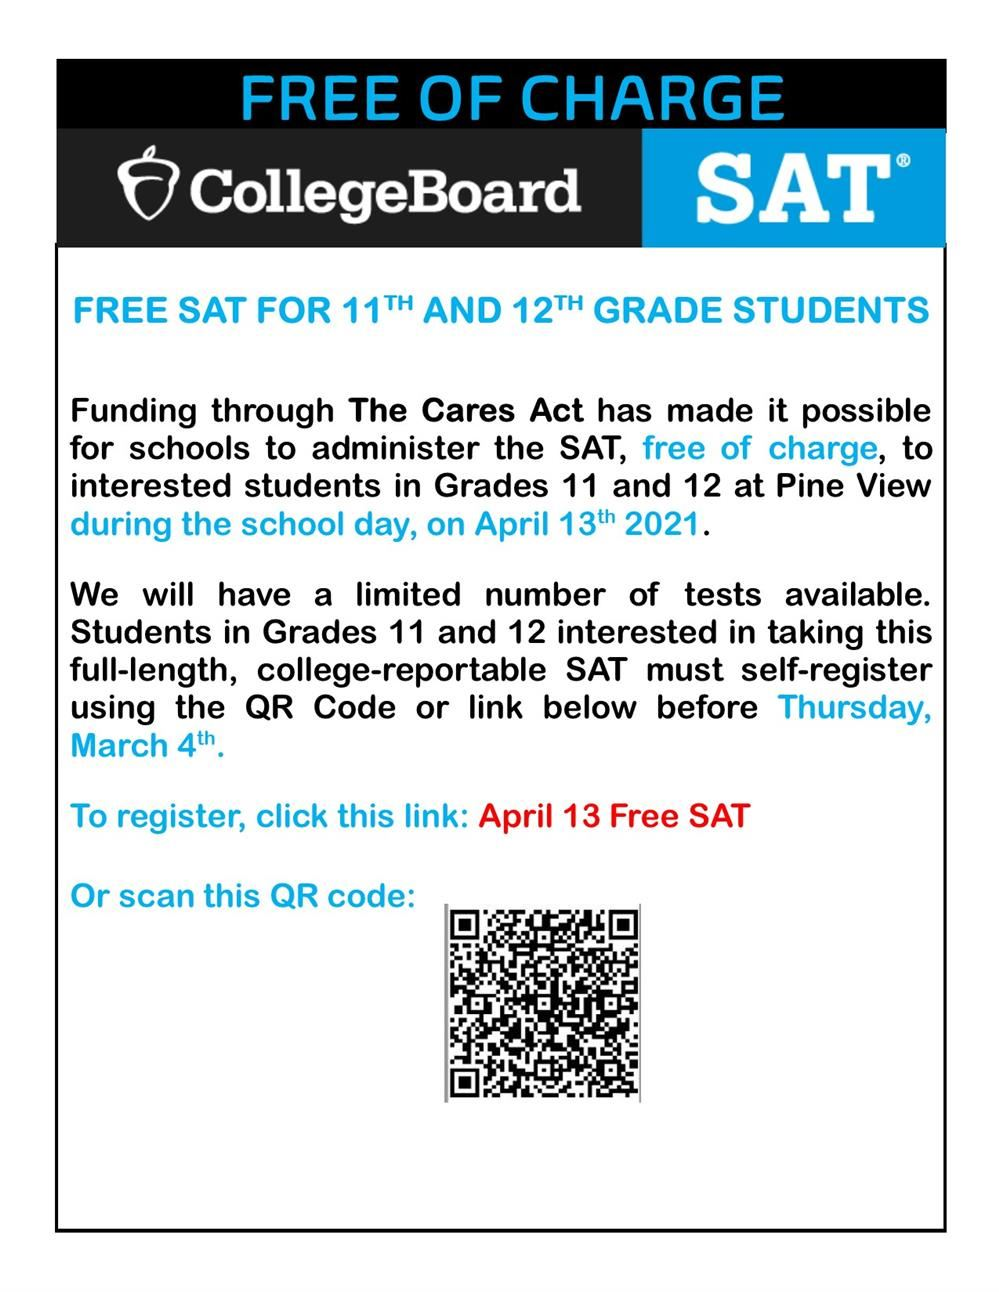 Free April 13 SAT Exam for Grades 11 and 12